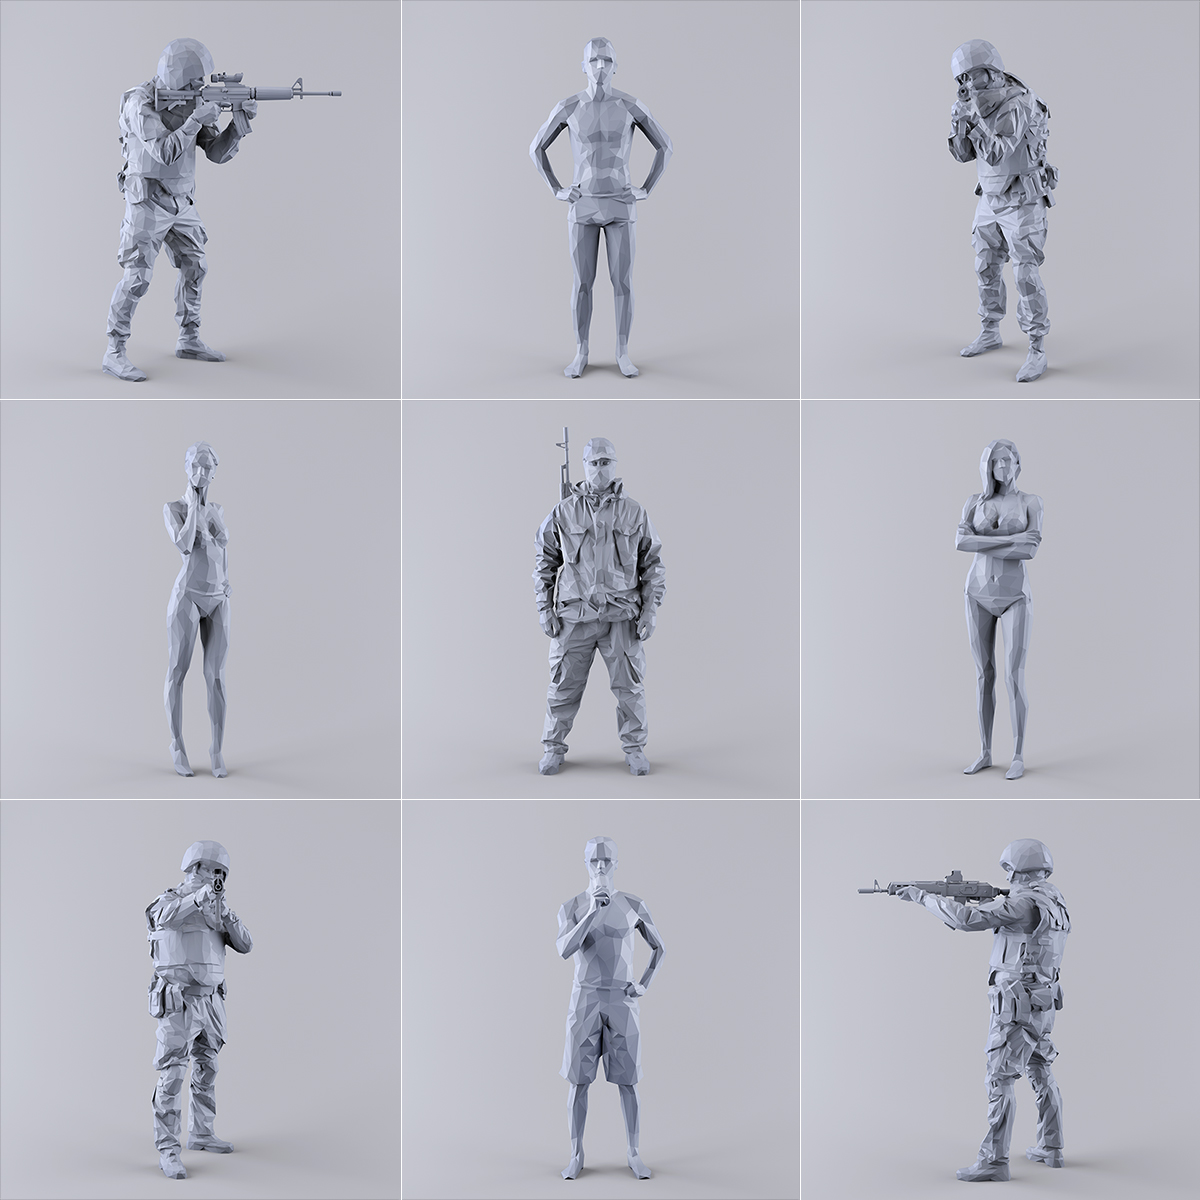 This was HomoSapiens I 000 2 - 2019 - This was HomoSapiens. I. (LowPoly Military and Vacation People)